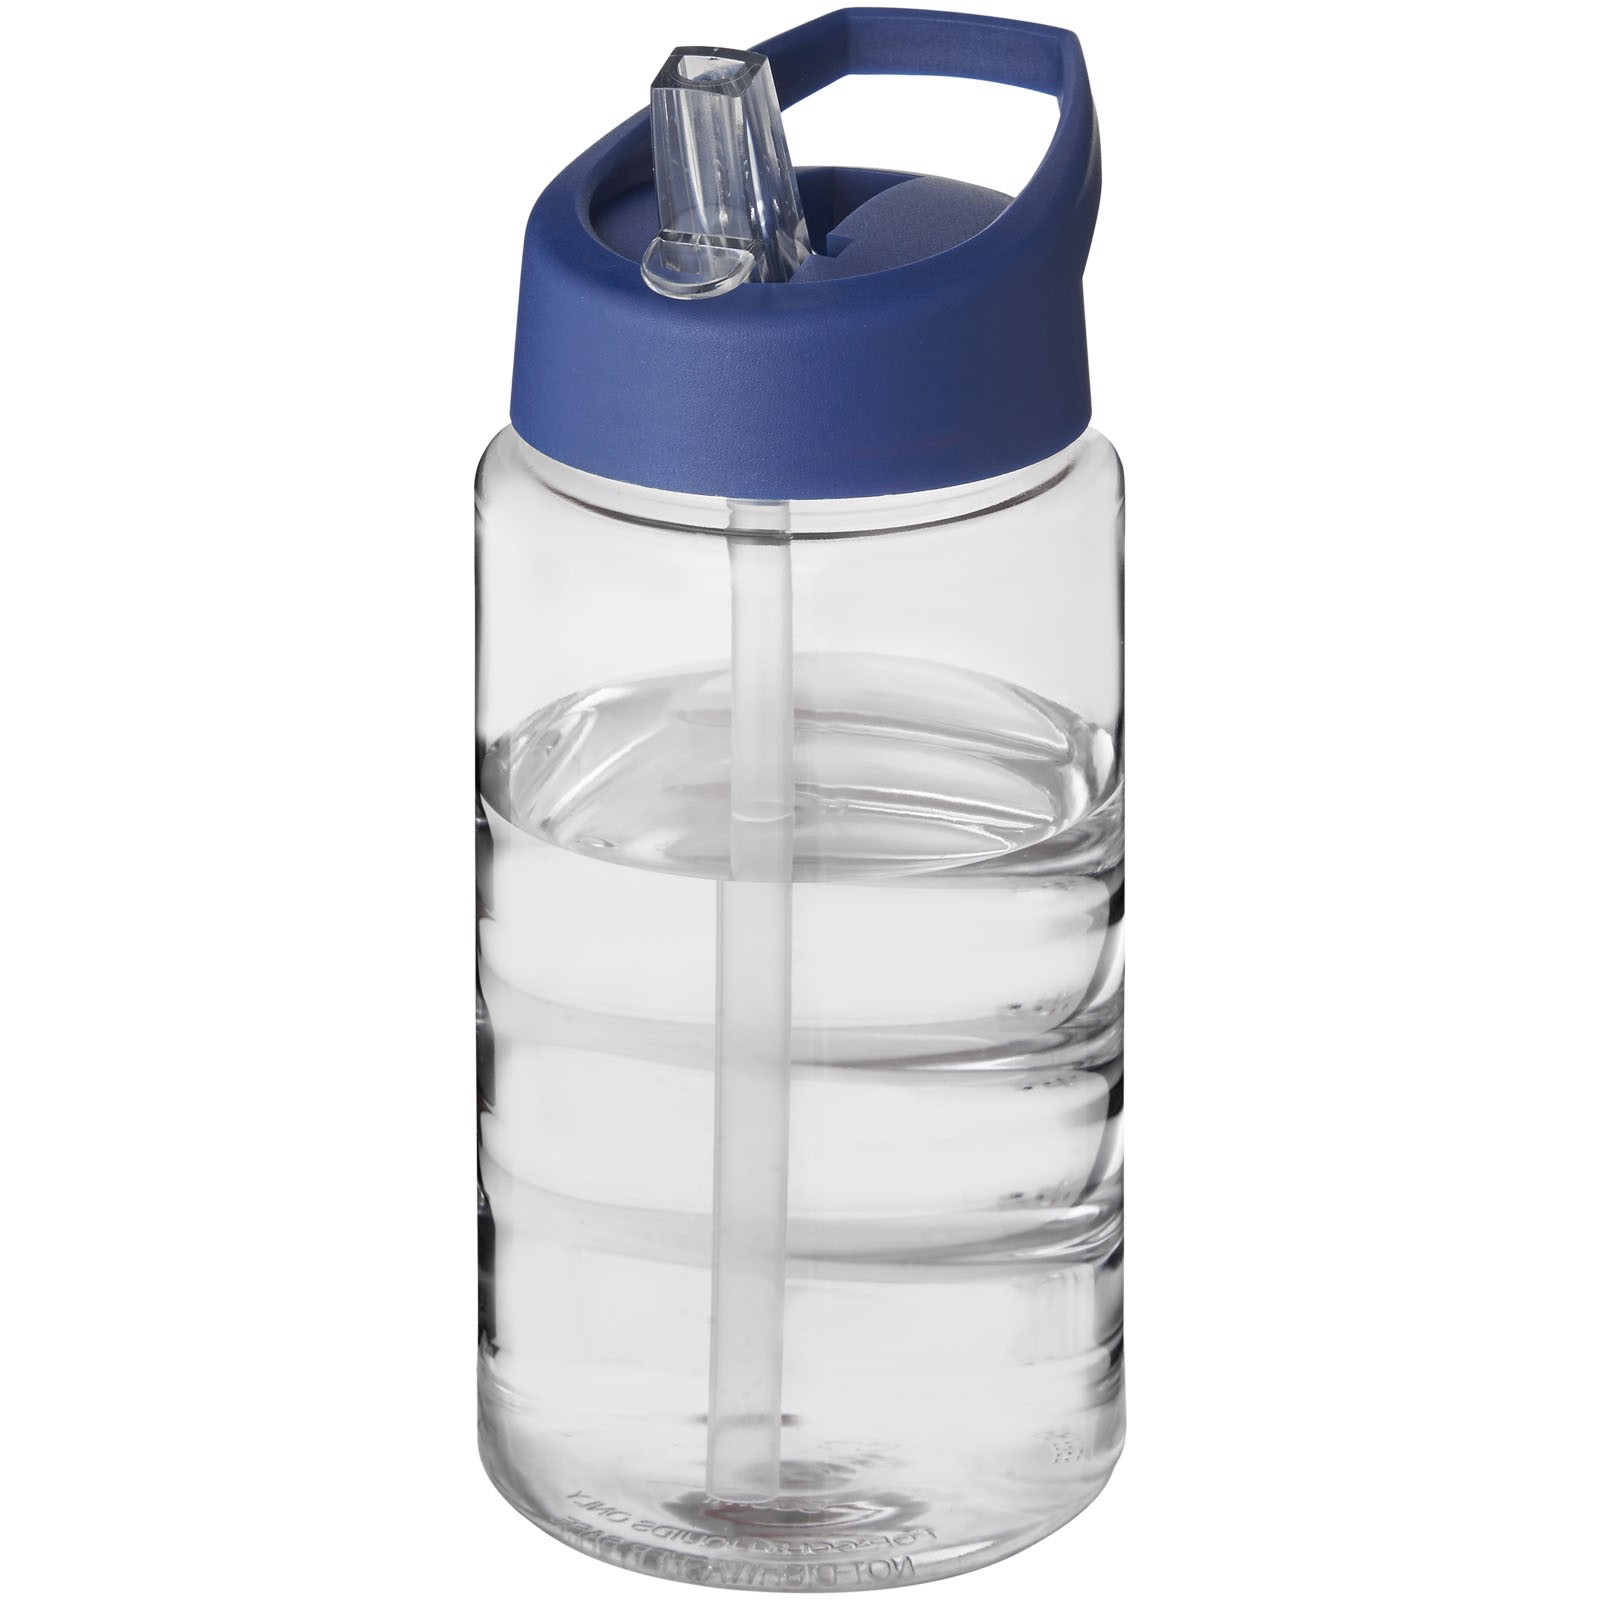 H2O Bop 500 ml spout lid sport bottle - Transparent / Blue